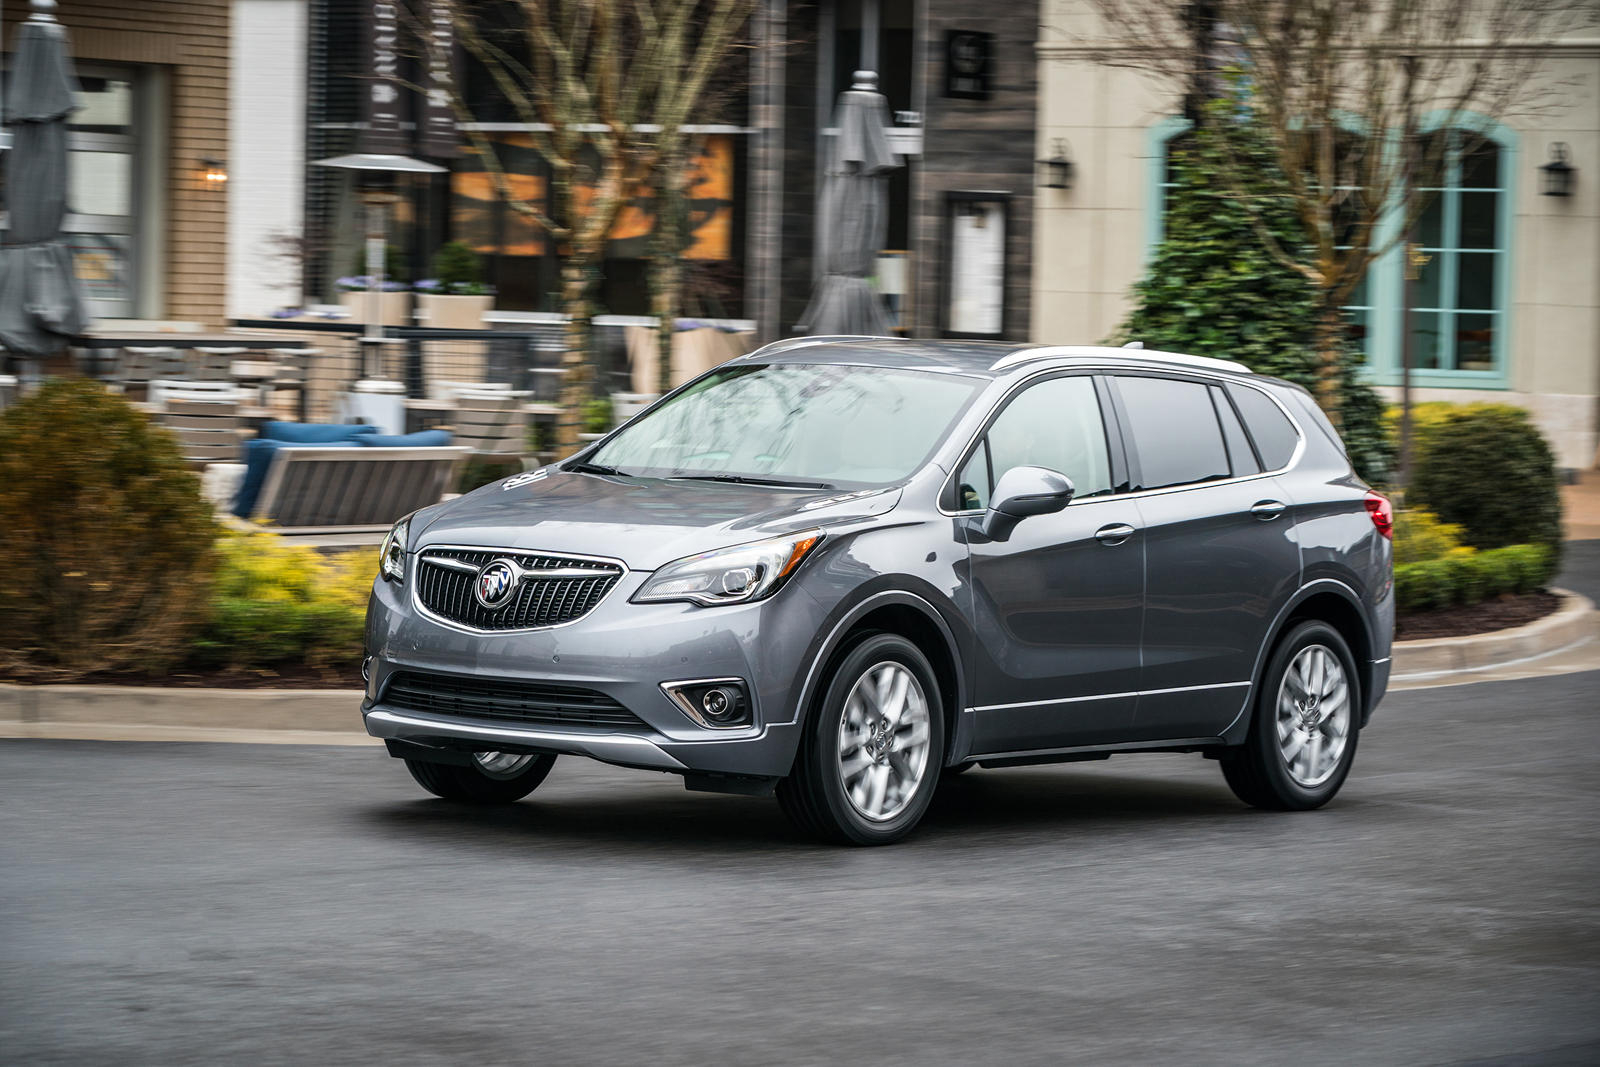 2020 Buick Envision: Review, Trims, Specs, Price, New 2021 Buick Envision Weight, Wheelbase, 0-60